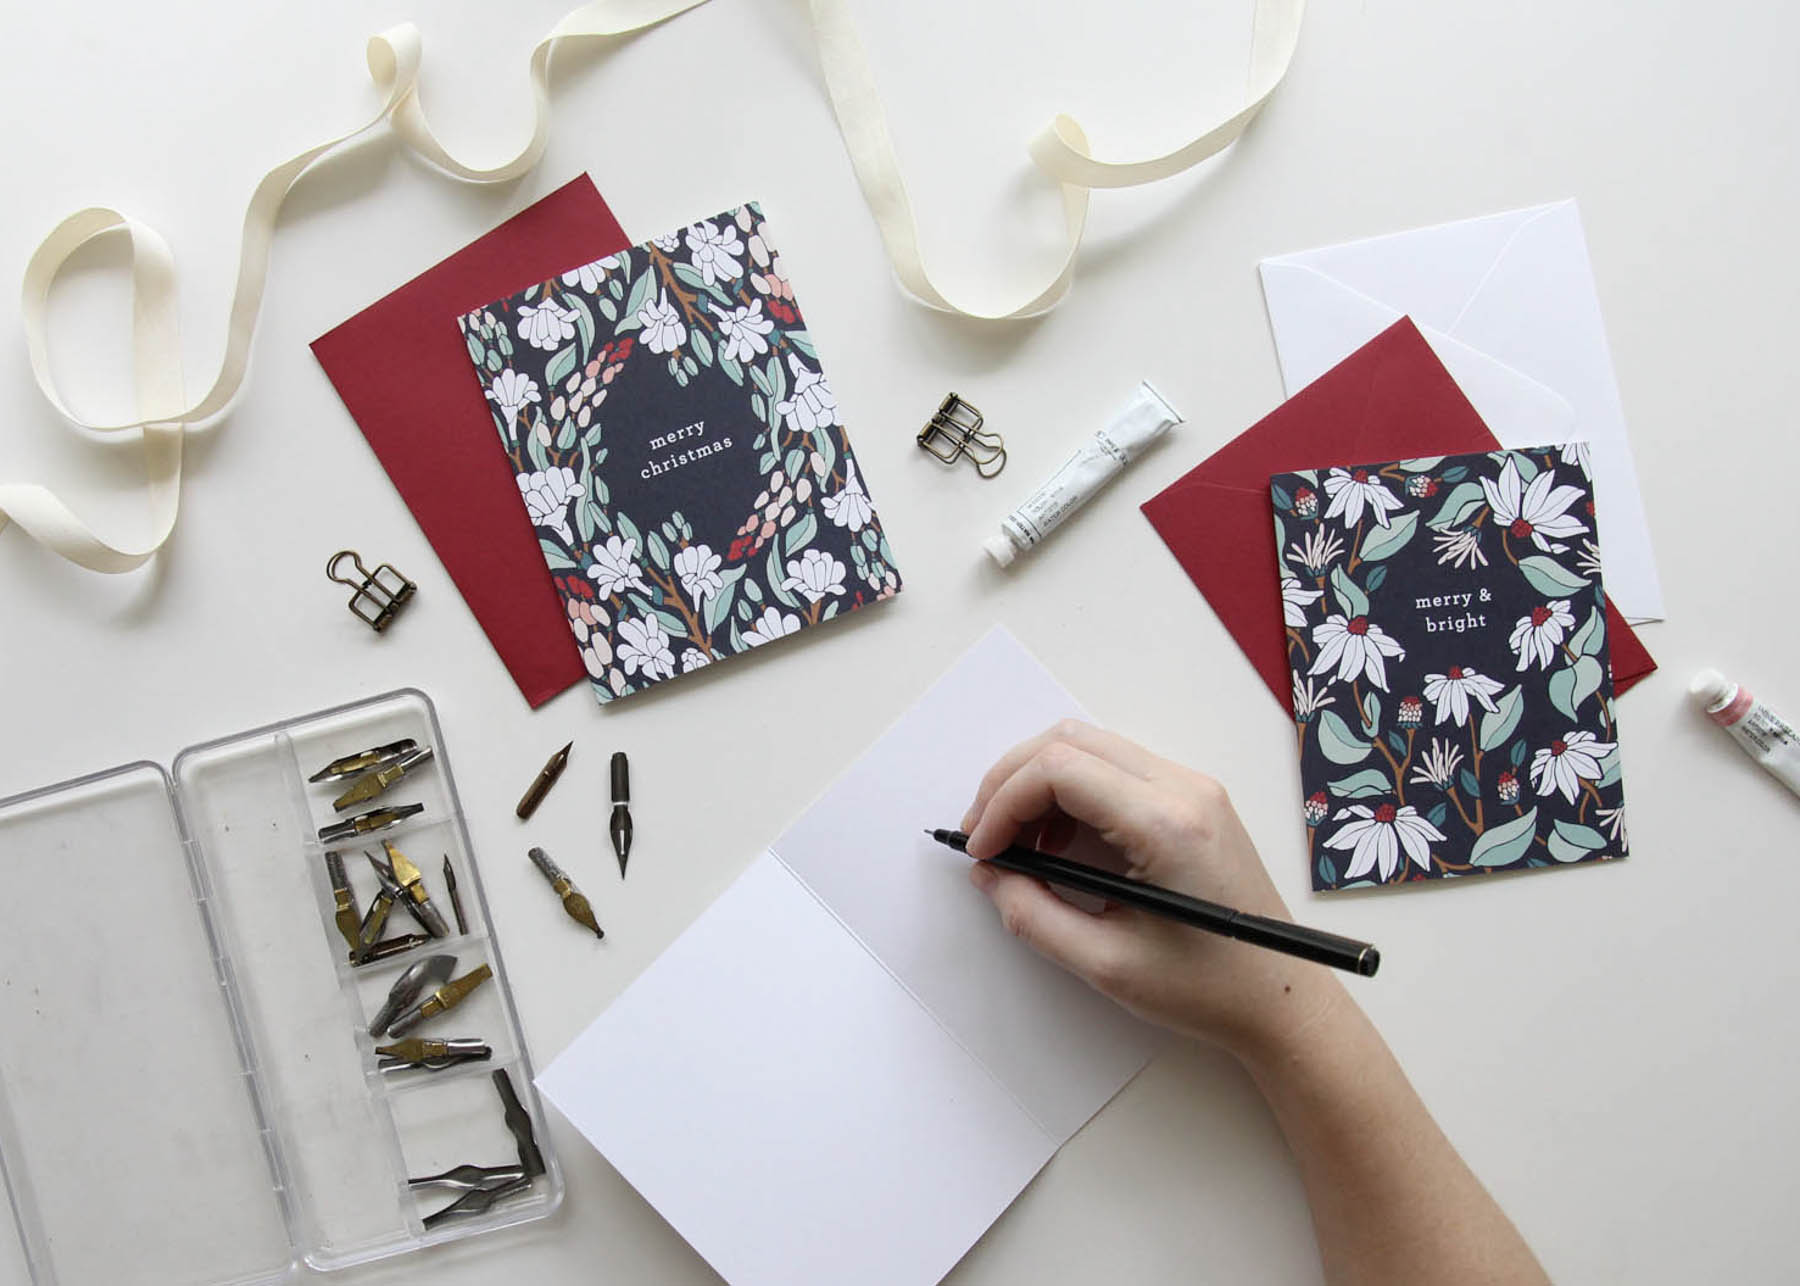 Christmas Cards 2018 Floral Illustrated Christmas Cards Holiday Cards by Root & Branch Paper Co.